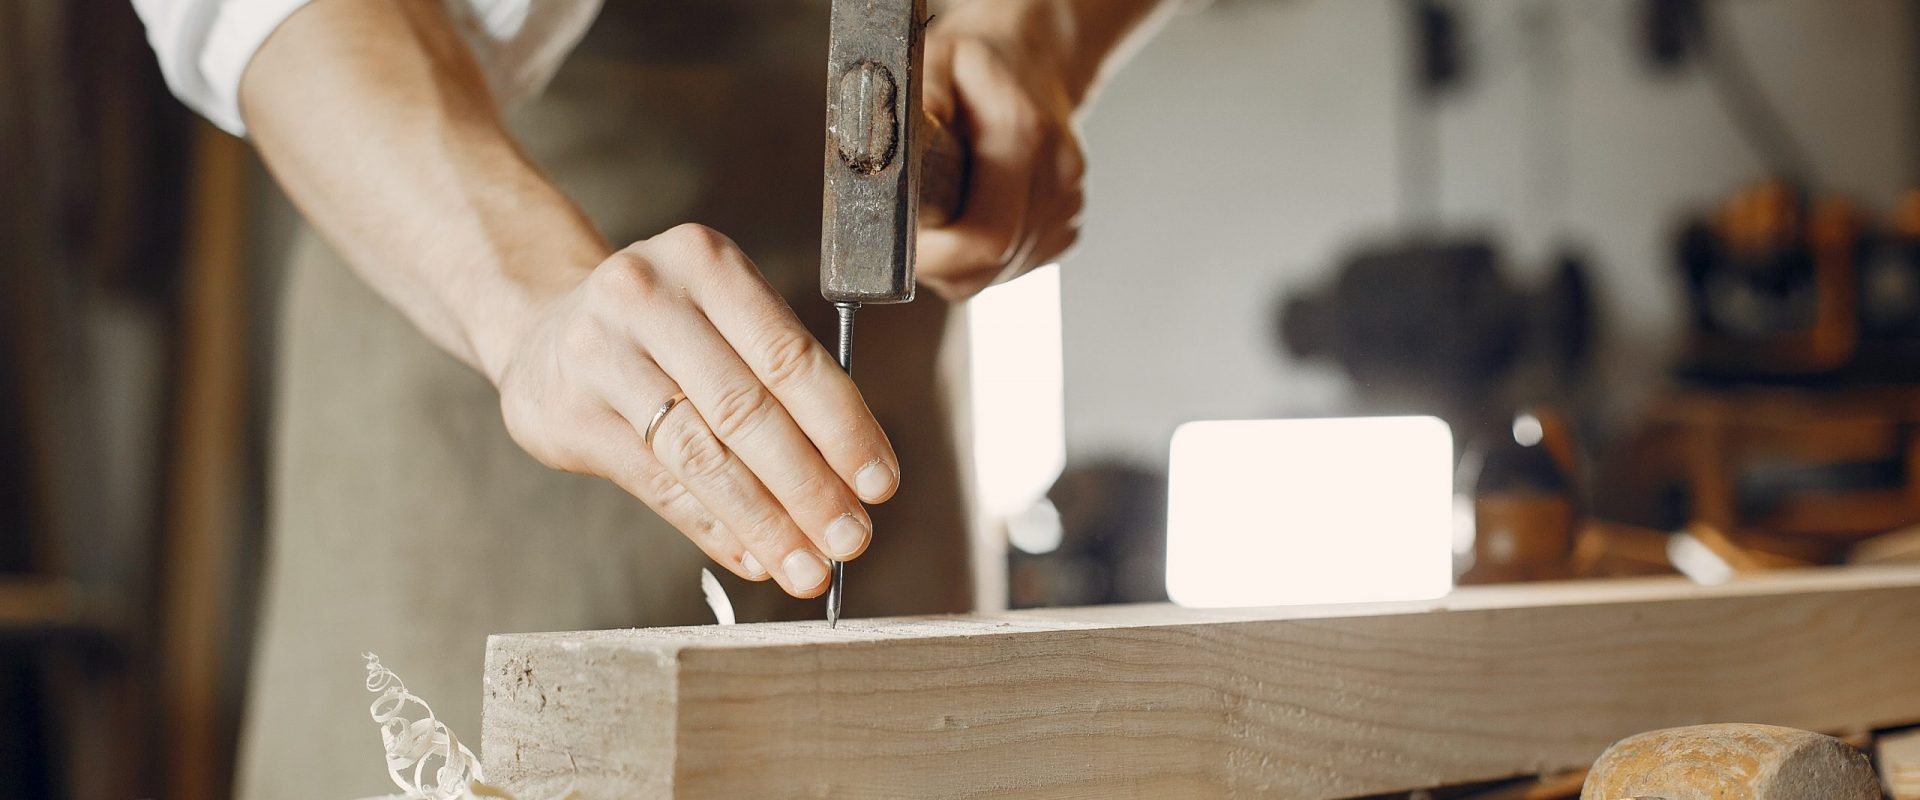 hammering nails into the wood